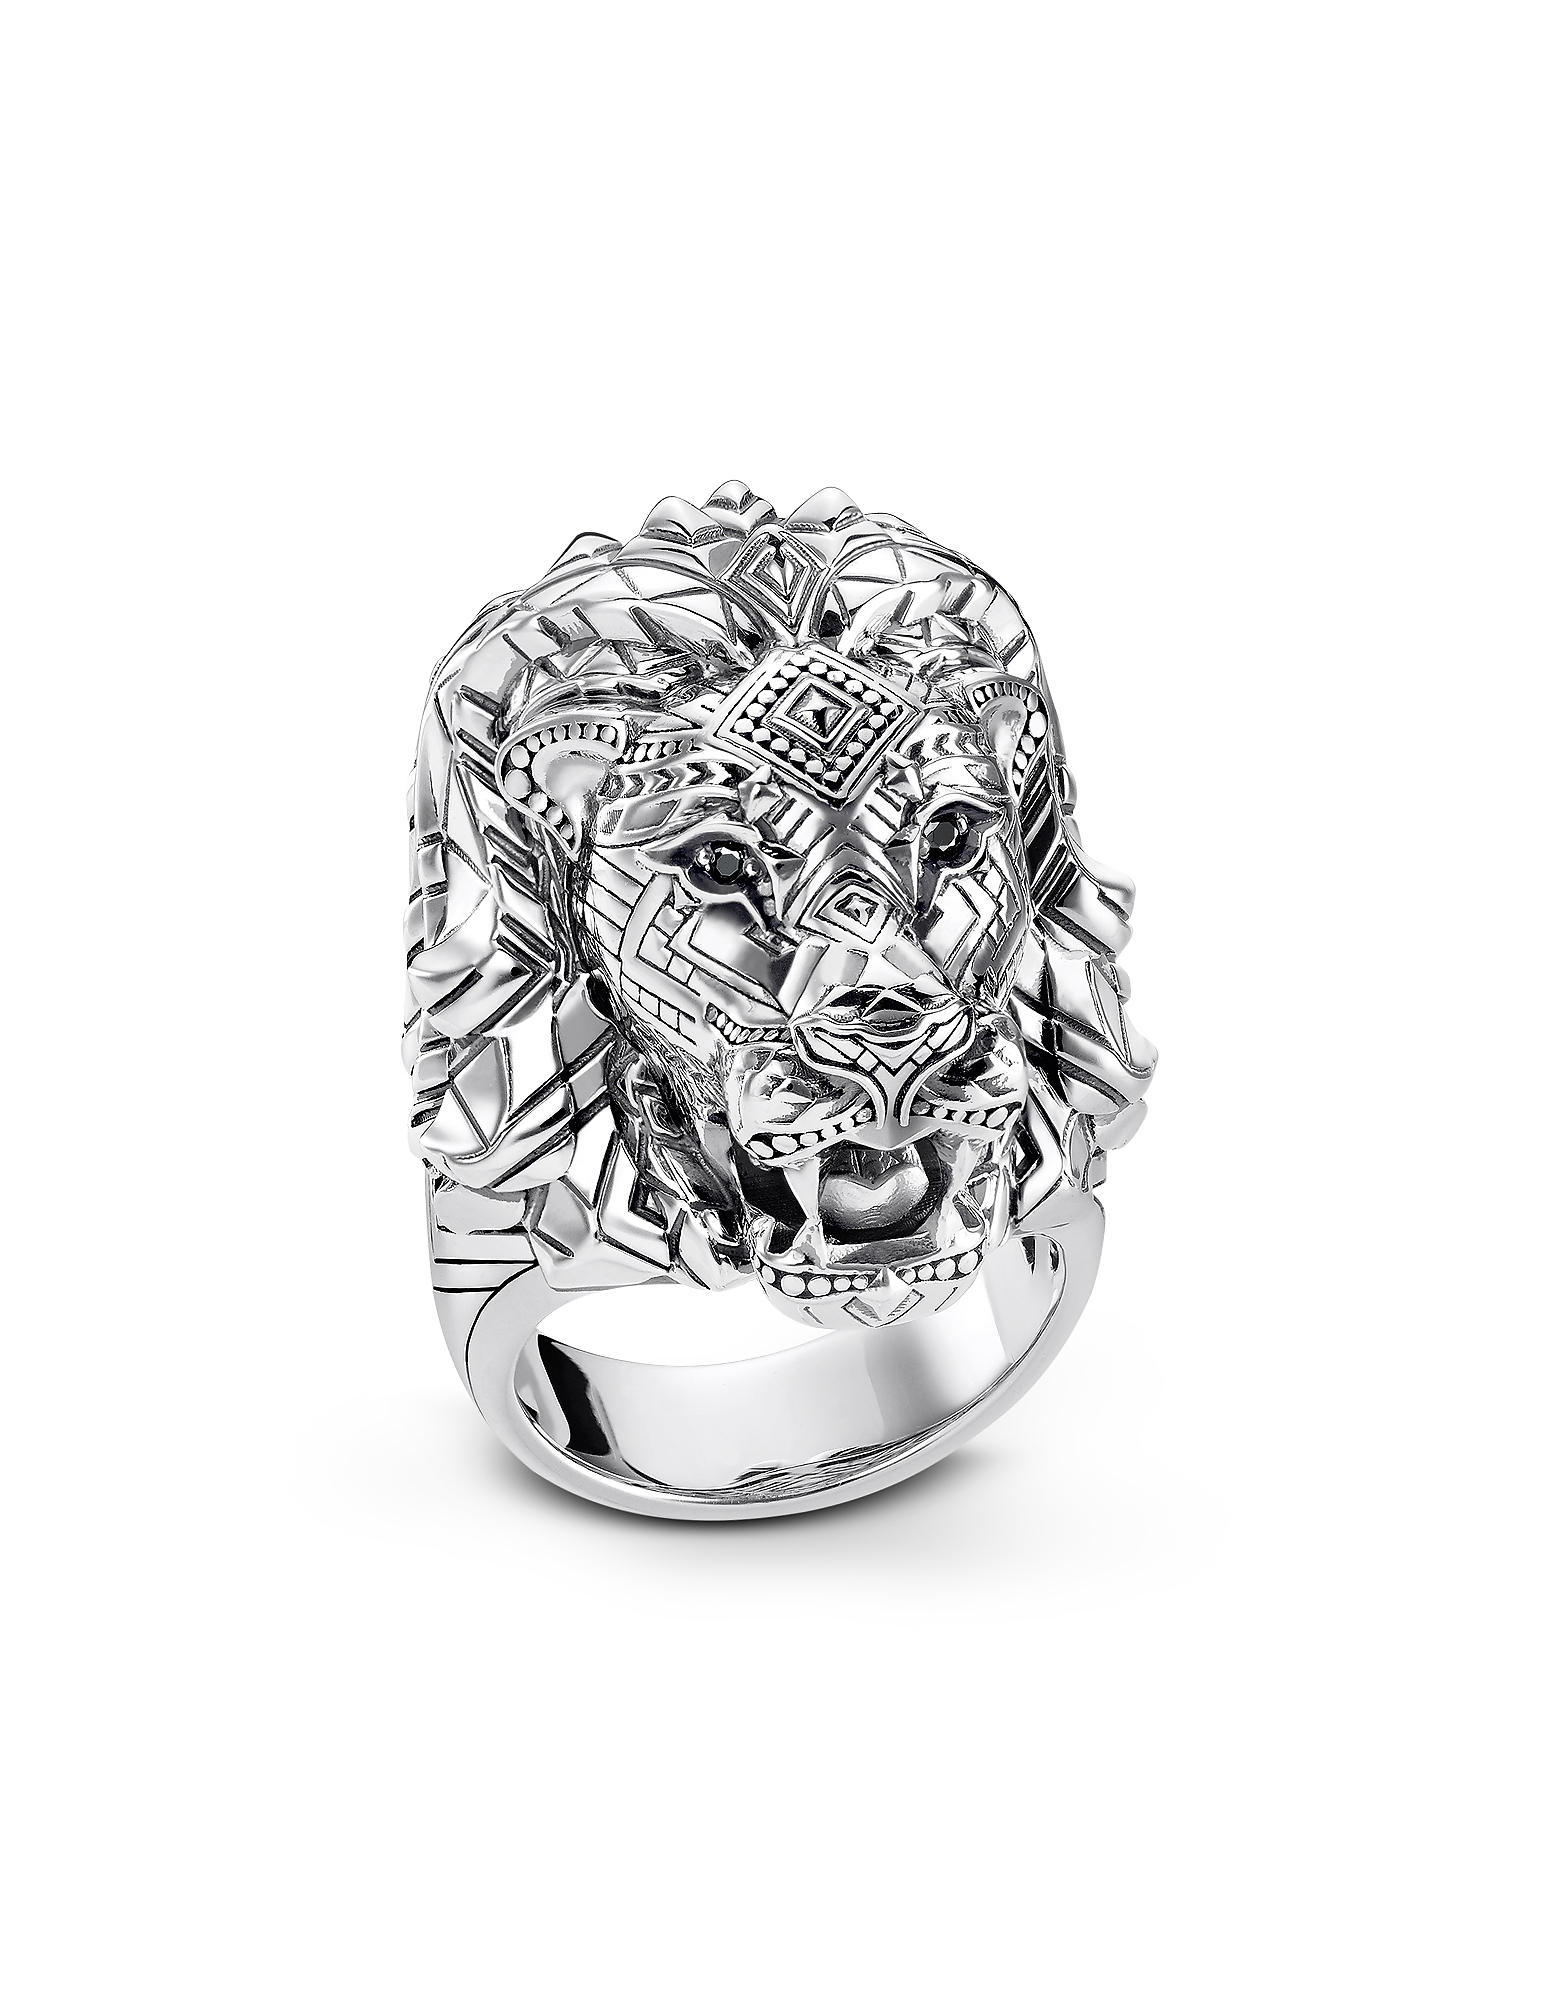 Blackened Sterling Silver Lion Ring w/Black Zirconia Pavè